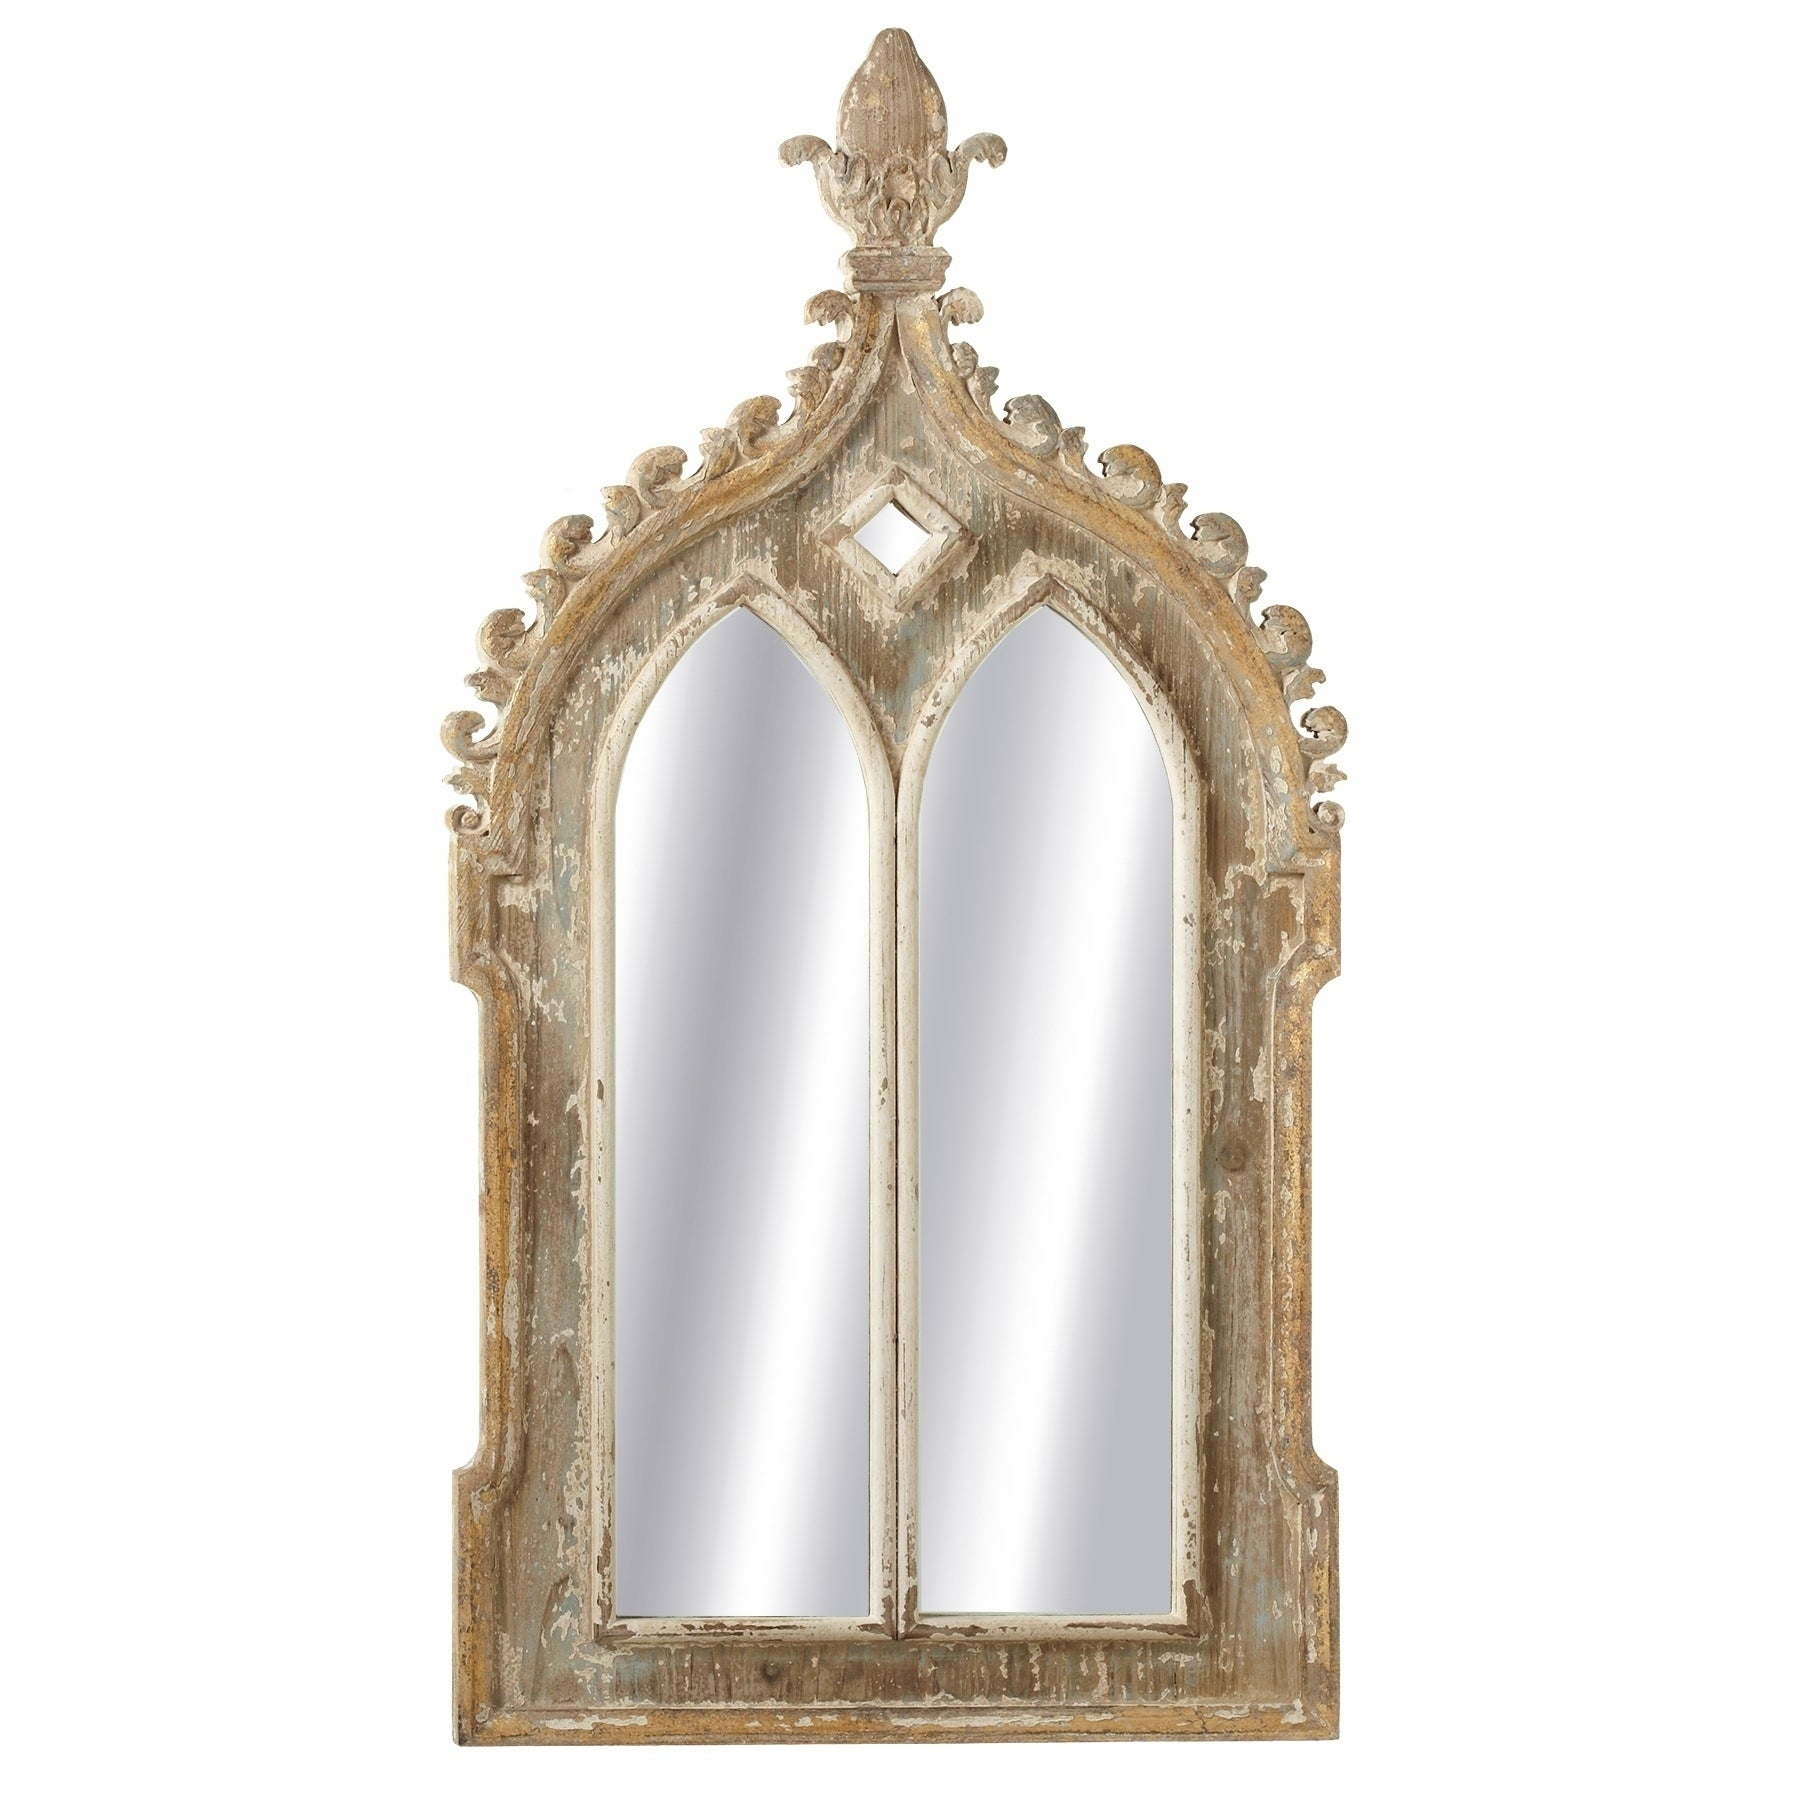 Midwest Cbk Gold Framed Double Arch Wall Mirror In Gold Arch Wall Mirrors (View 11 of 20)